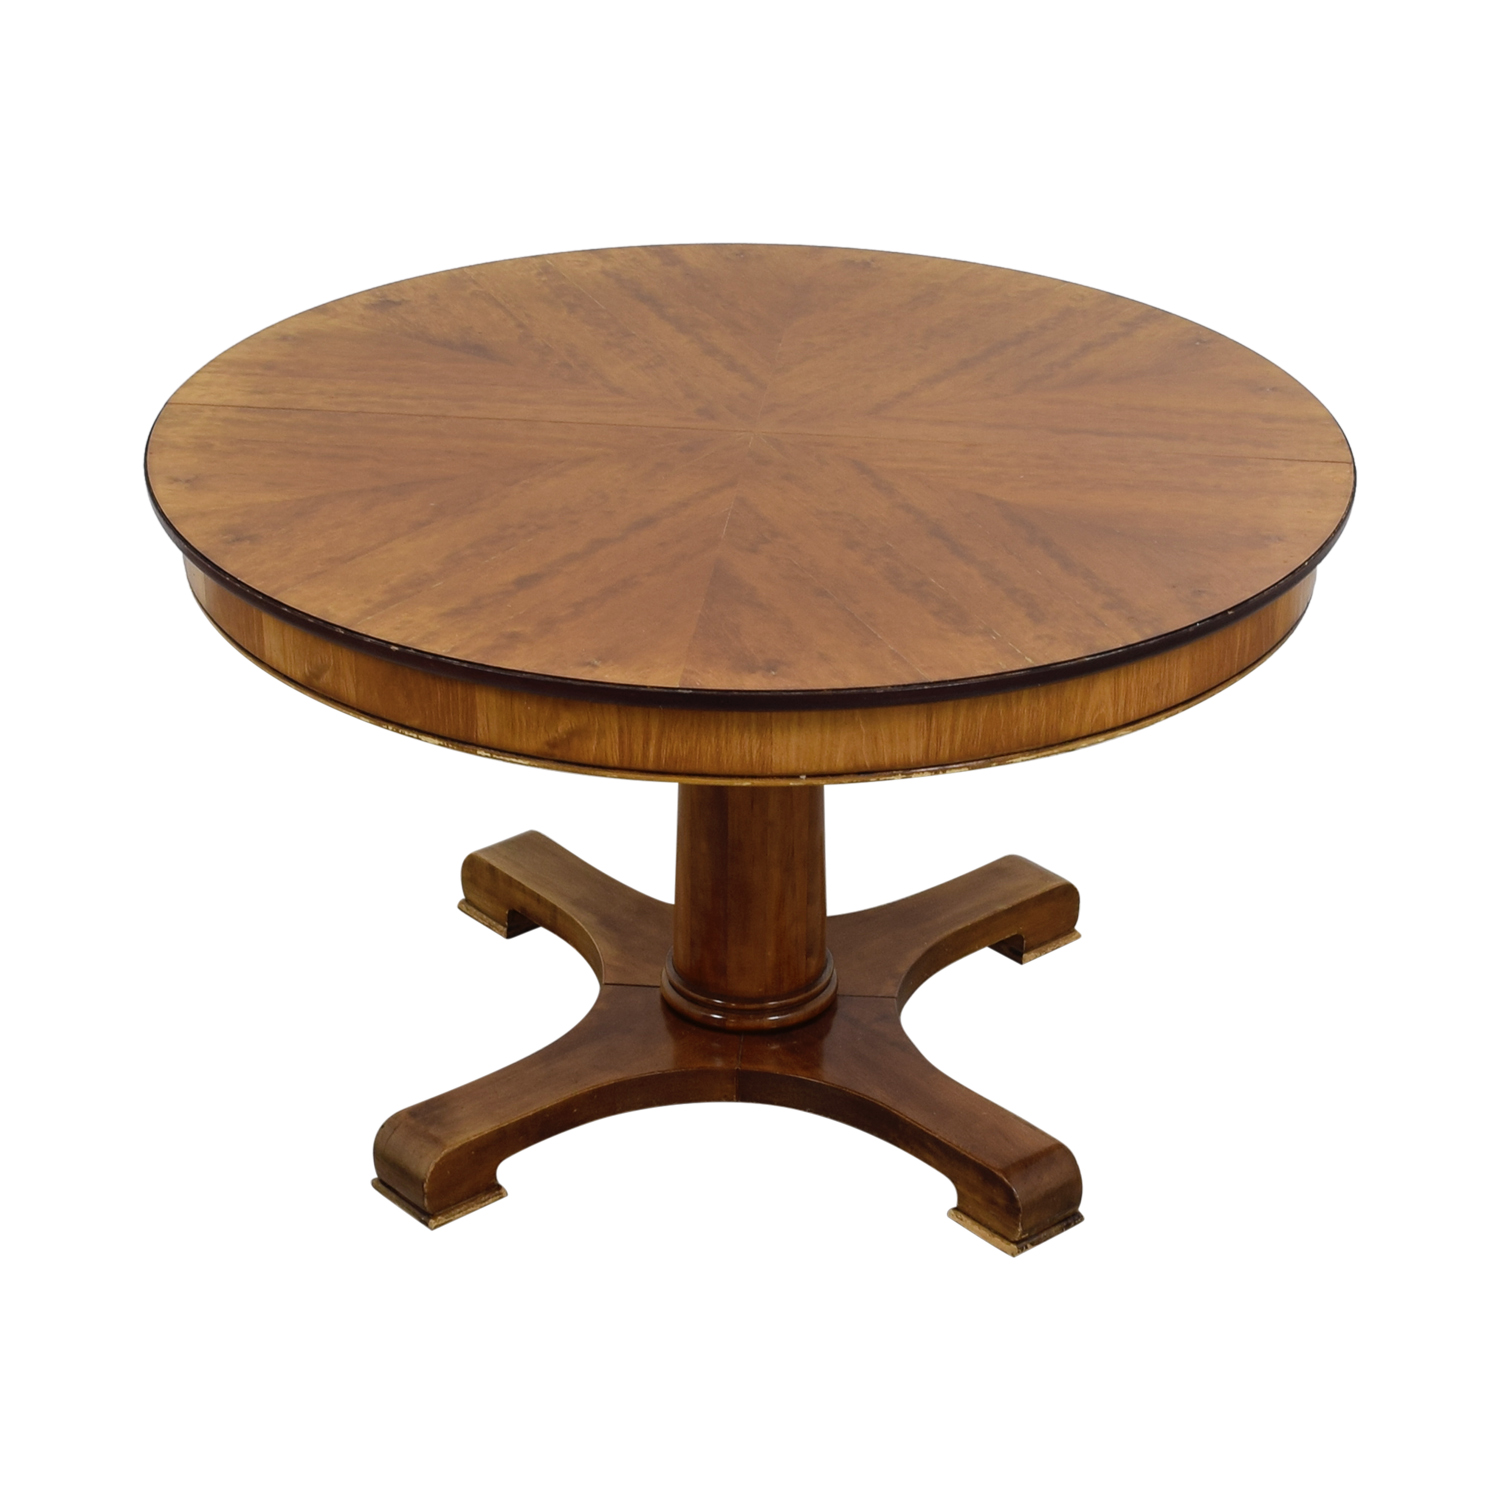 buy Grange Expandable Wood Dining Table with Protective Cover Grange Dinner Tables